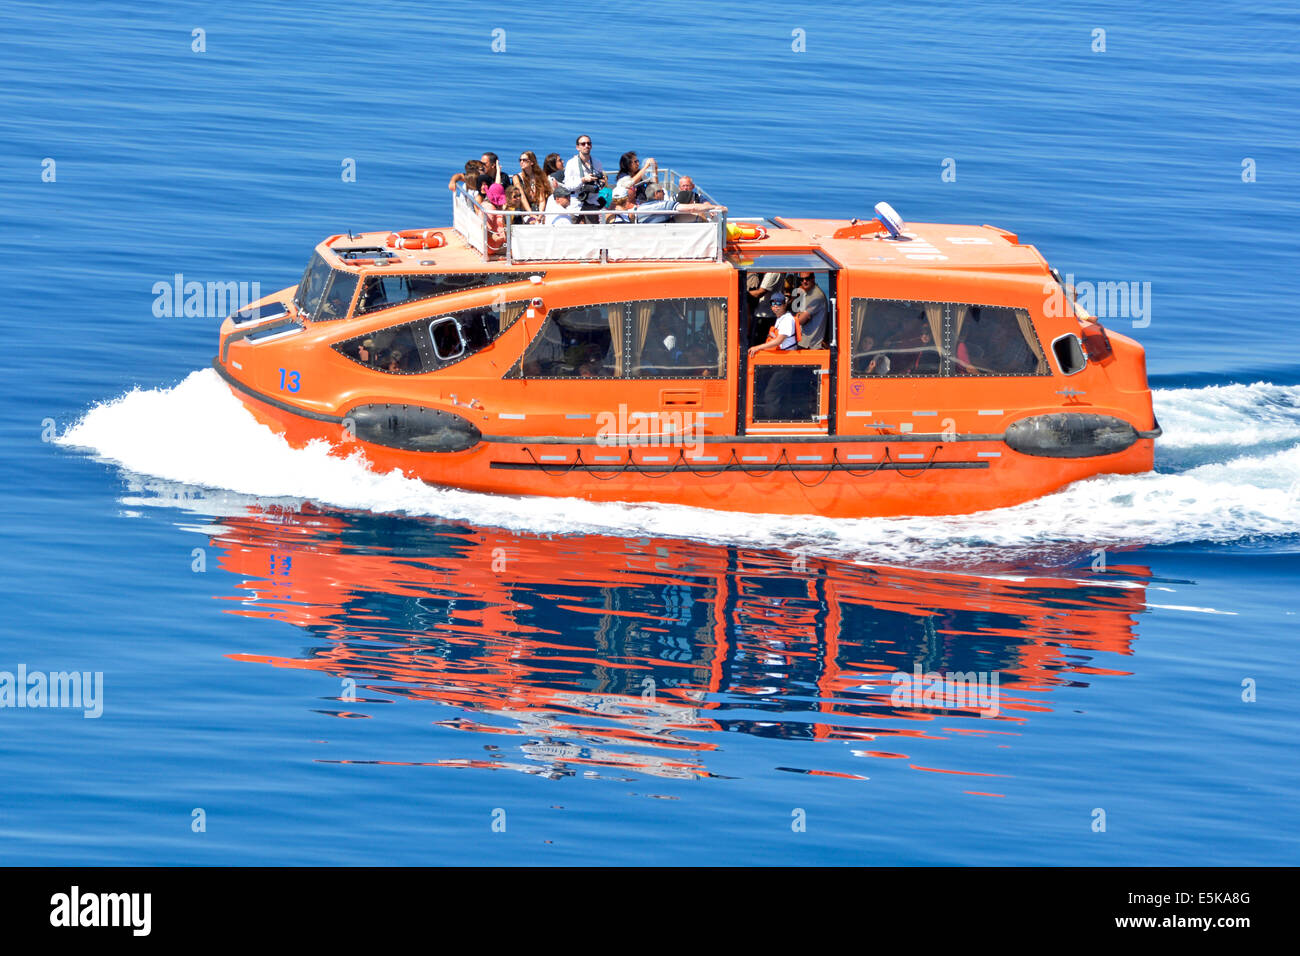 Lifeboat Tender Cruise Ship Passengers Ferry Between Off